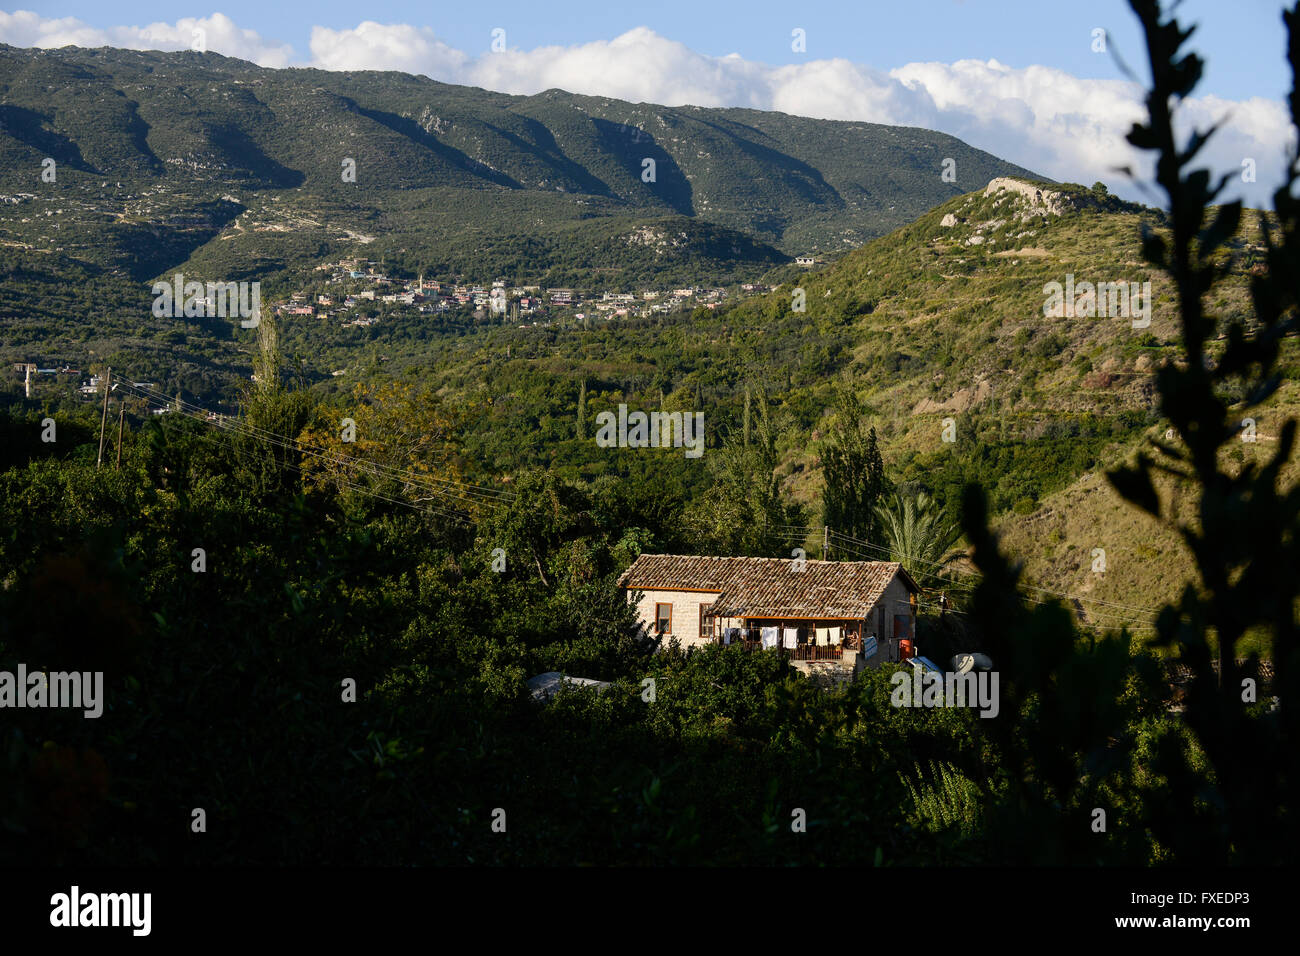 TURKEY Antakya, Musa Dagh, former armenian village Yoghonoluk, about 4000 armenian villagers fled during the genocide - Stock Image